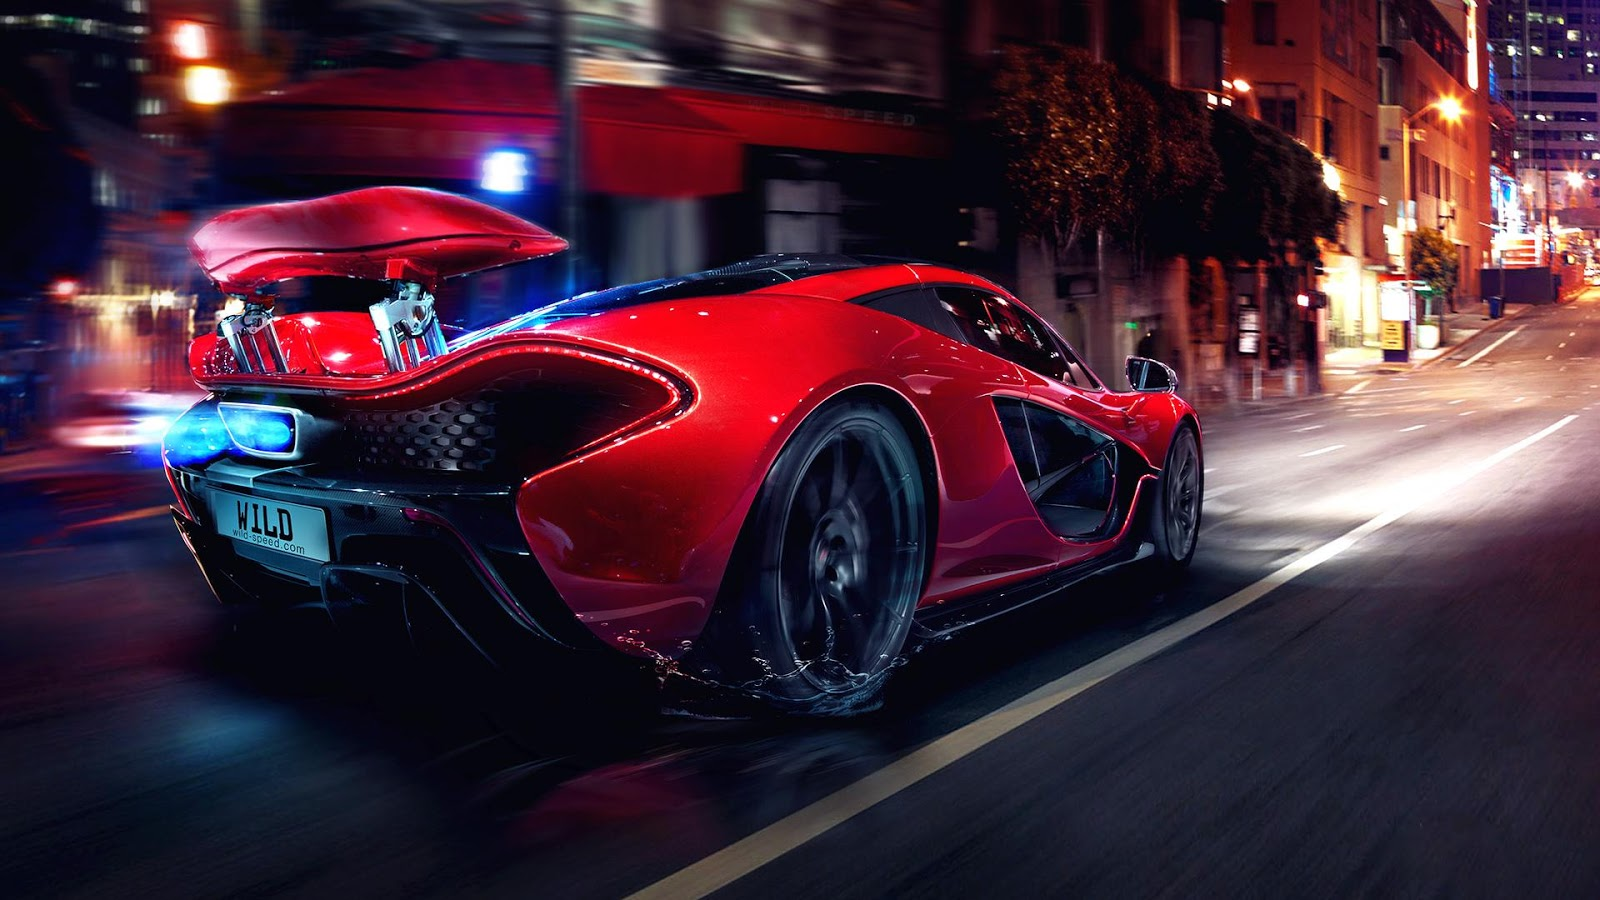 4k Car Wallpapers Android Apps On Google Play